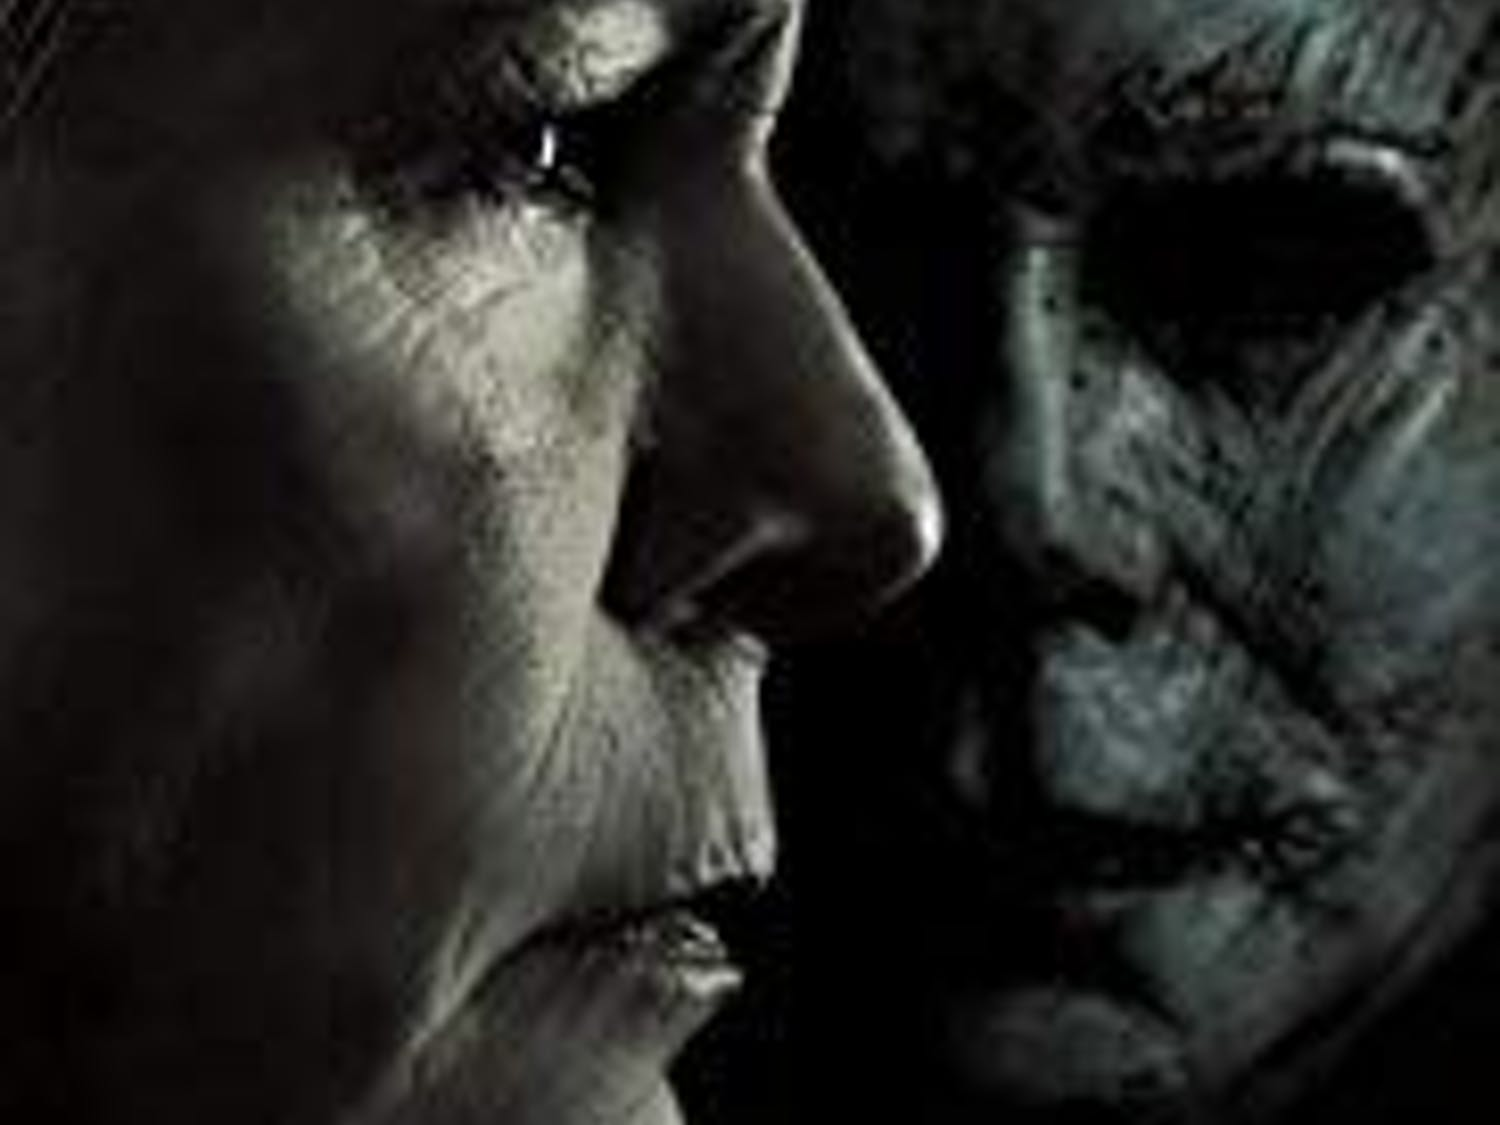 """""""Halloween"""" doesn't rely solely on over-the-top gore to punctuate its terror in the minds of the audience; the viewer is left at the mercy of the filmmakers — much the same as the victims being terrorized on screen."""